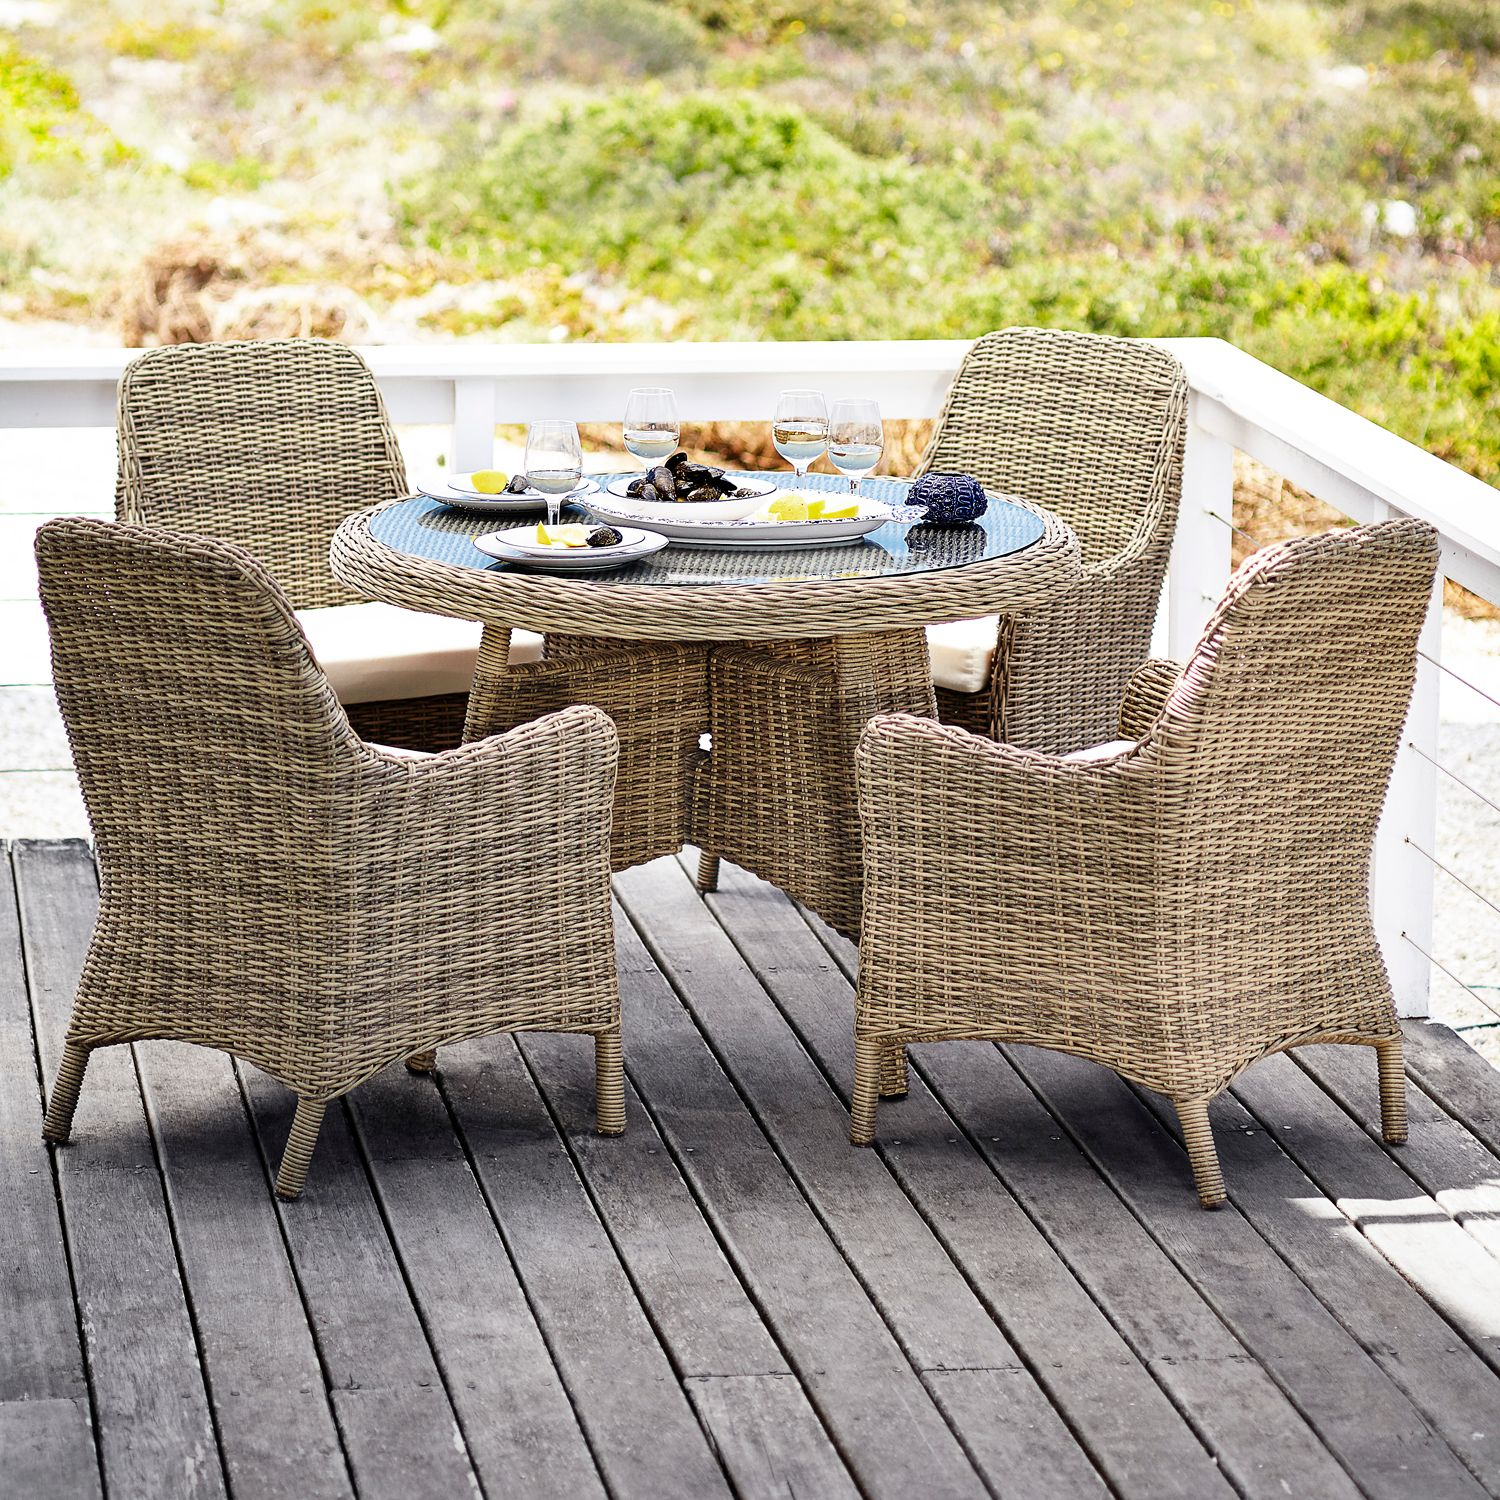 John Lewis Rio 4 Seater Outdoor Dining Set